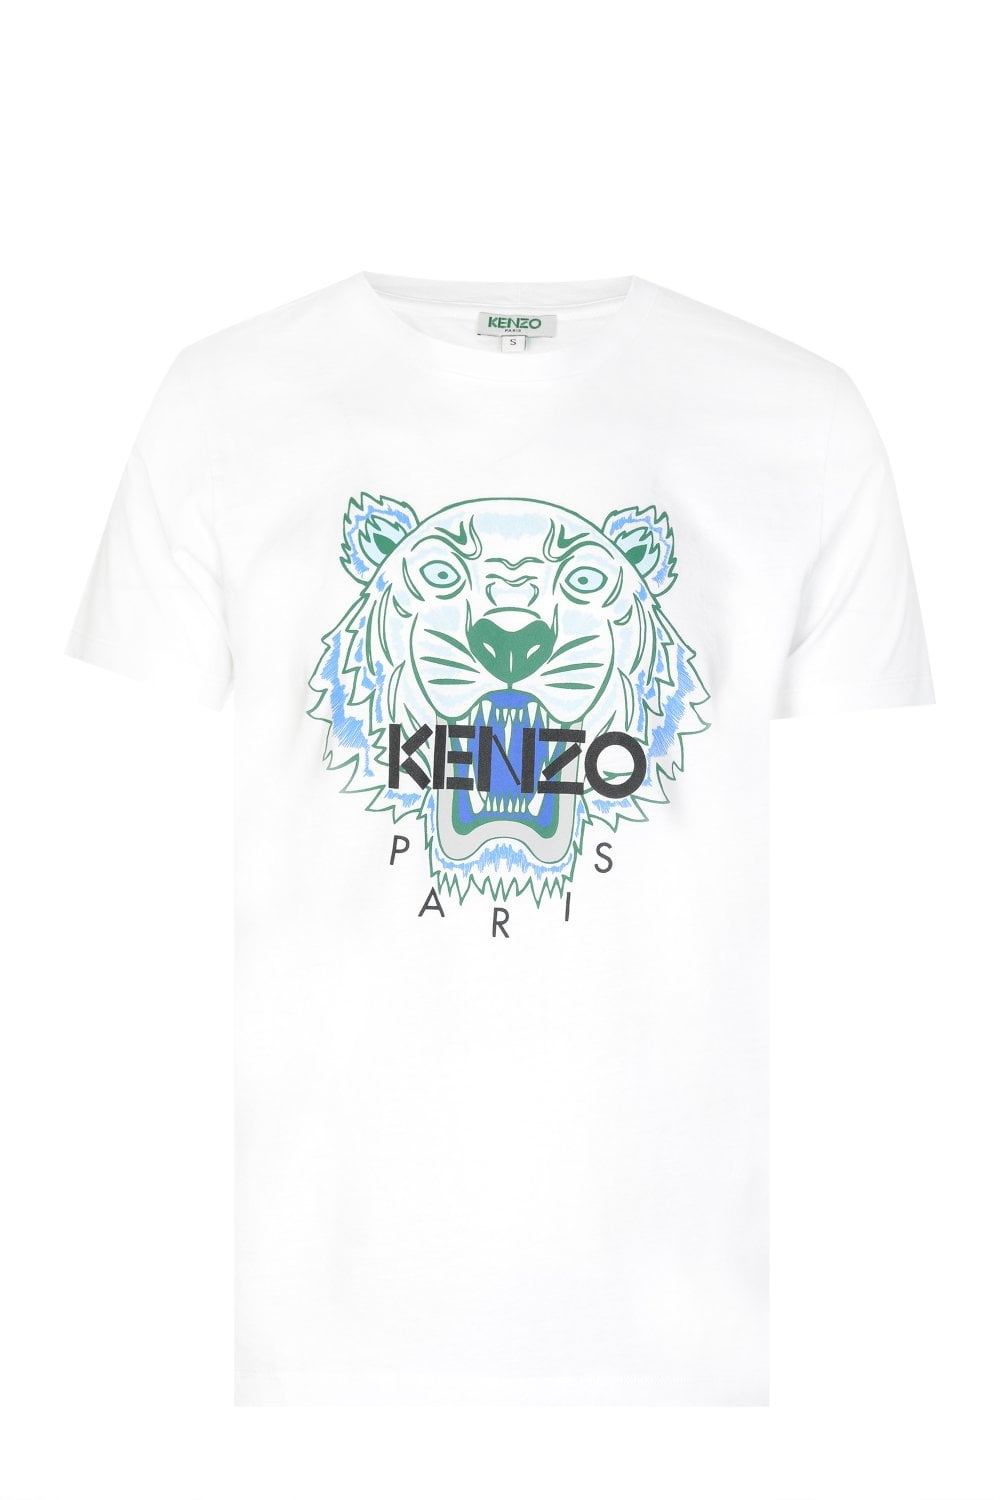 18c68a82a022 KENZO Kenzo Paris Classic Tiger T-shirt - Clothing from Circle ...